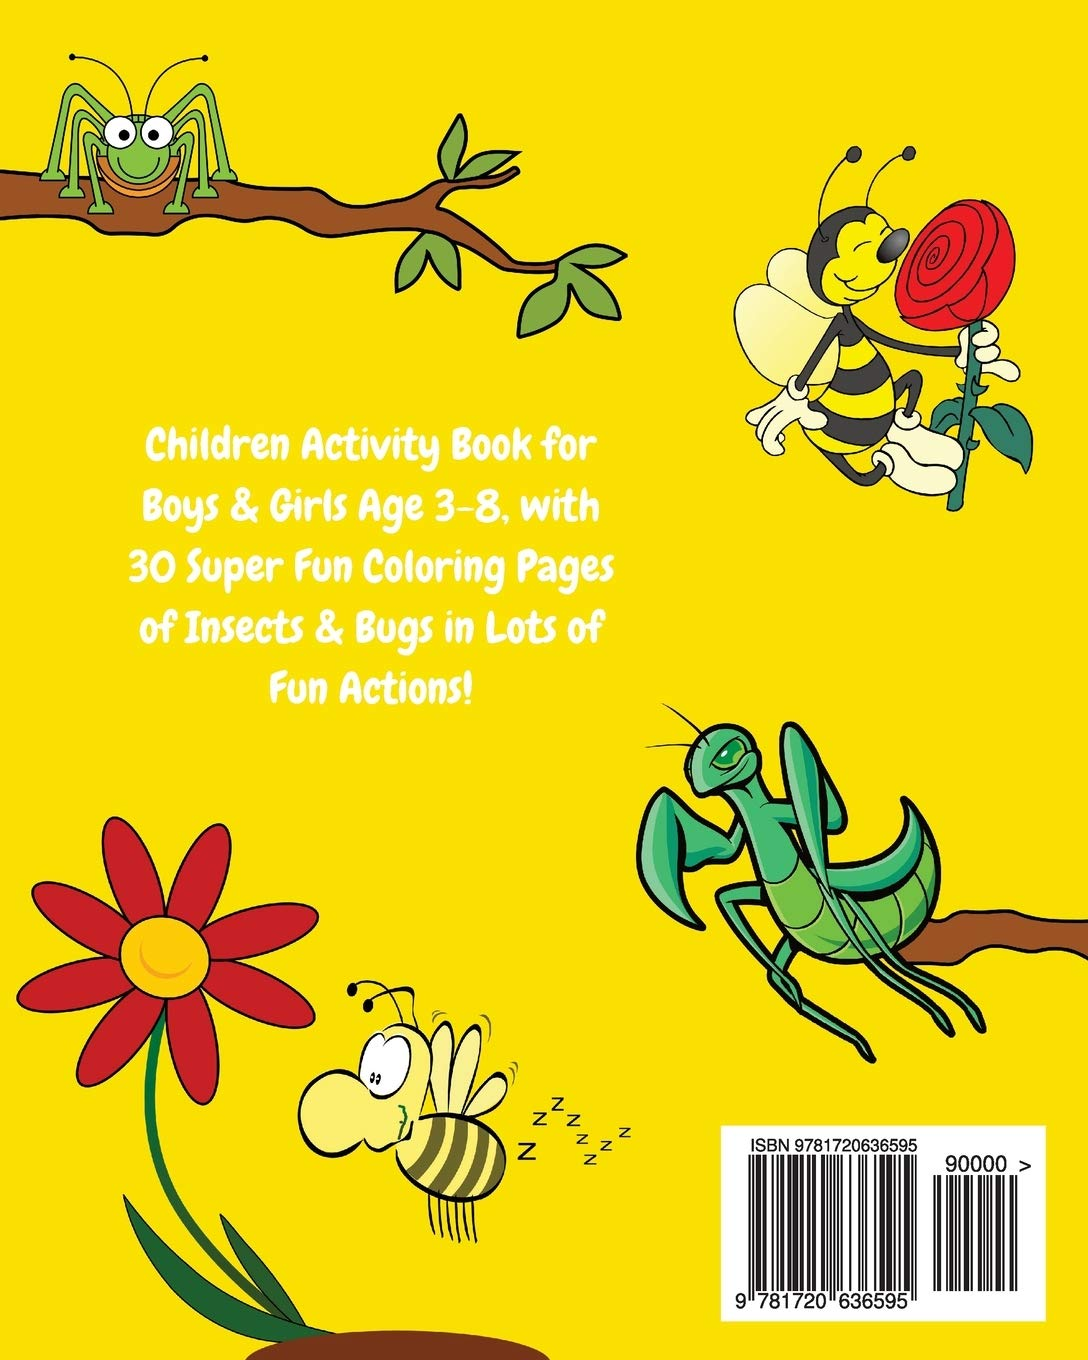 Bugs Kids Coloring Book +Fun Facts for Kids about Bugs & Insects ...   1360x1088